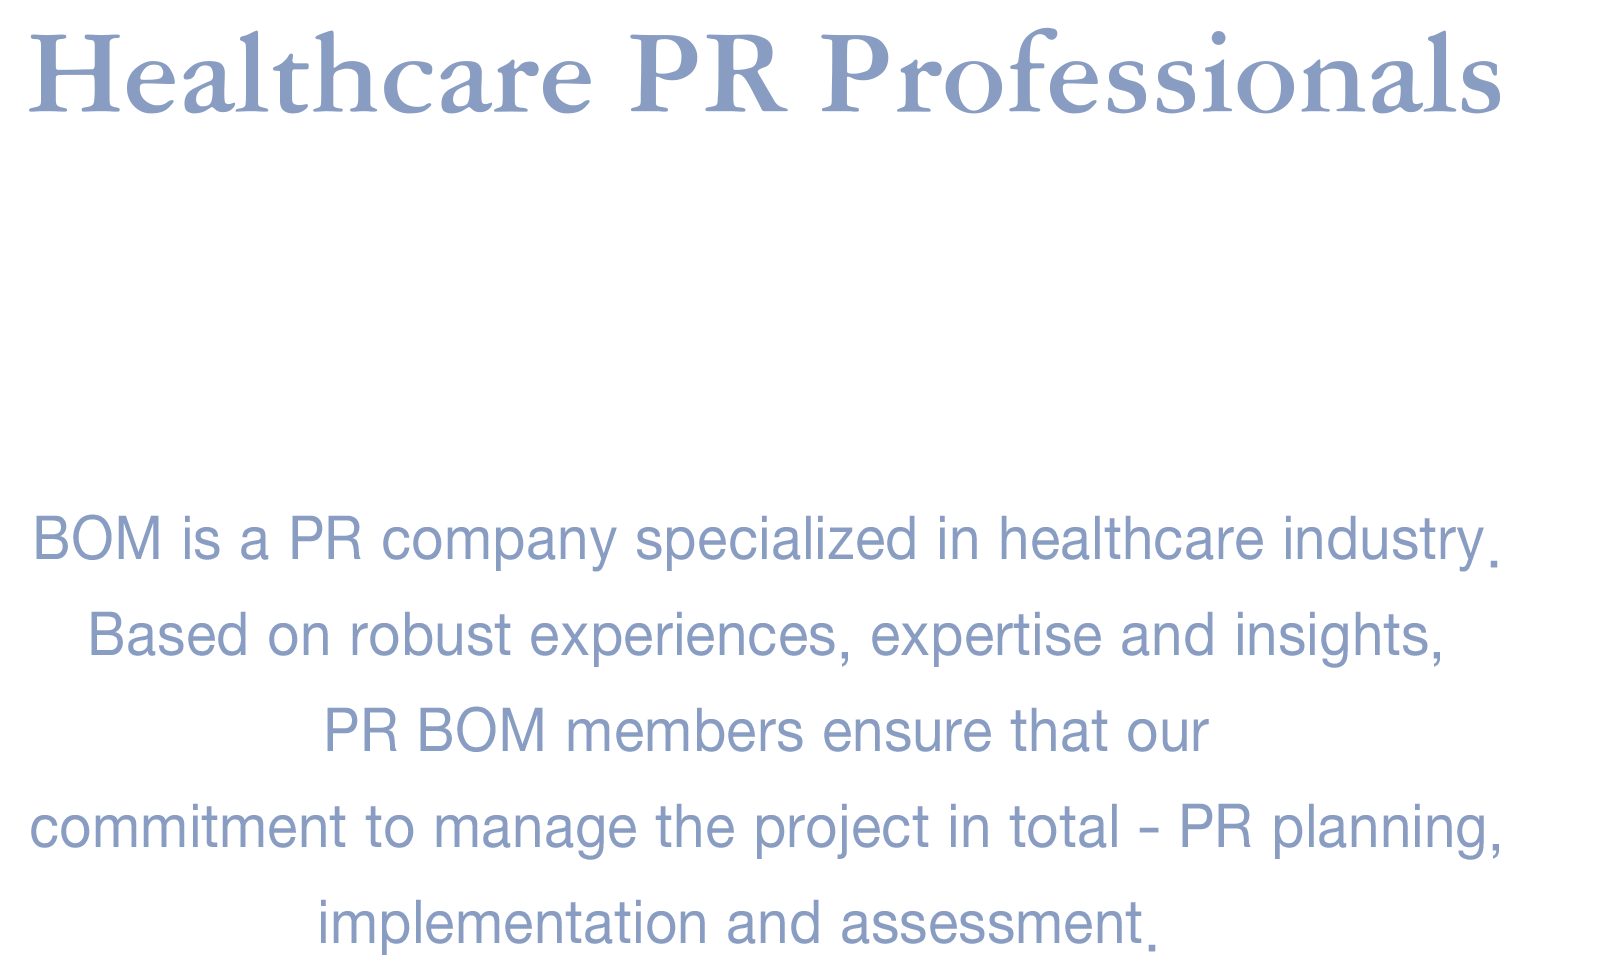 Healthcare PR Professionals BOM is a PR company specialized in healthcare industry. Based on robust experiences, expertise and insights, PR BOM members ensure that our commitment to manage the project in total - PR planning, implementation and assessment.